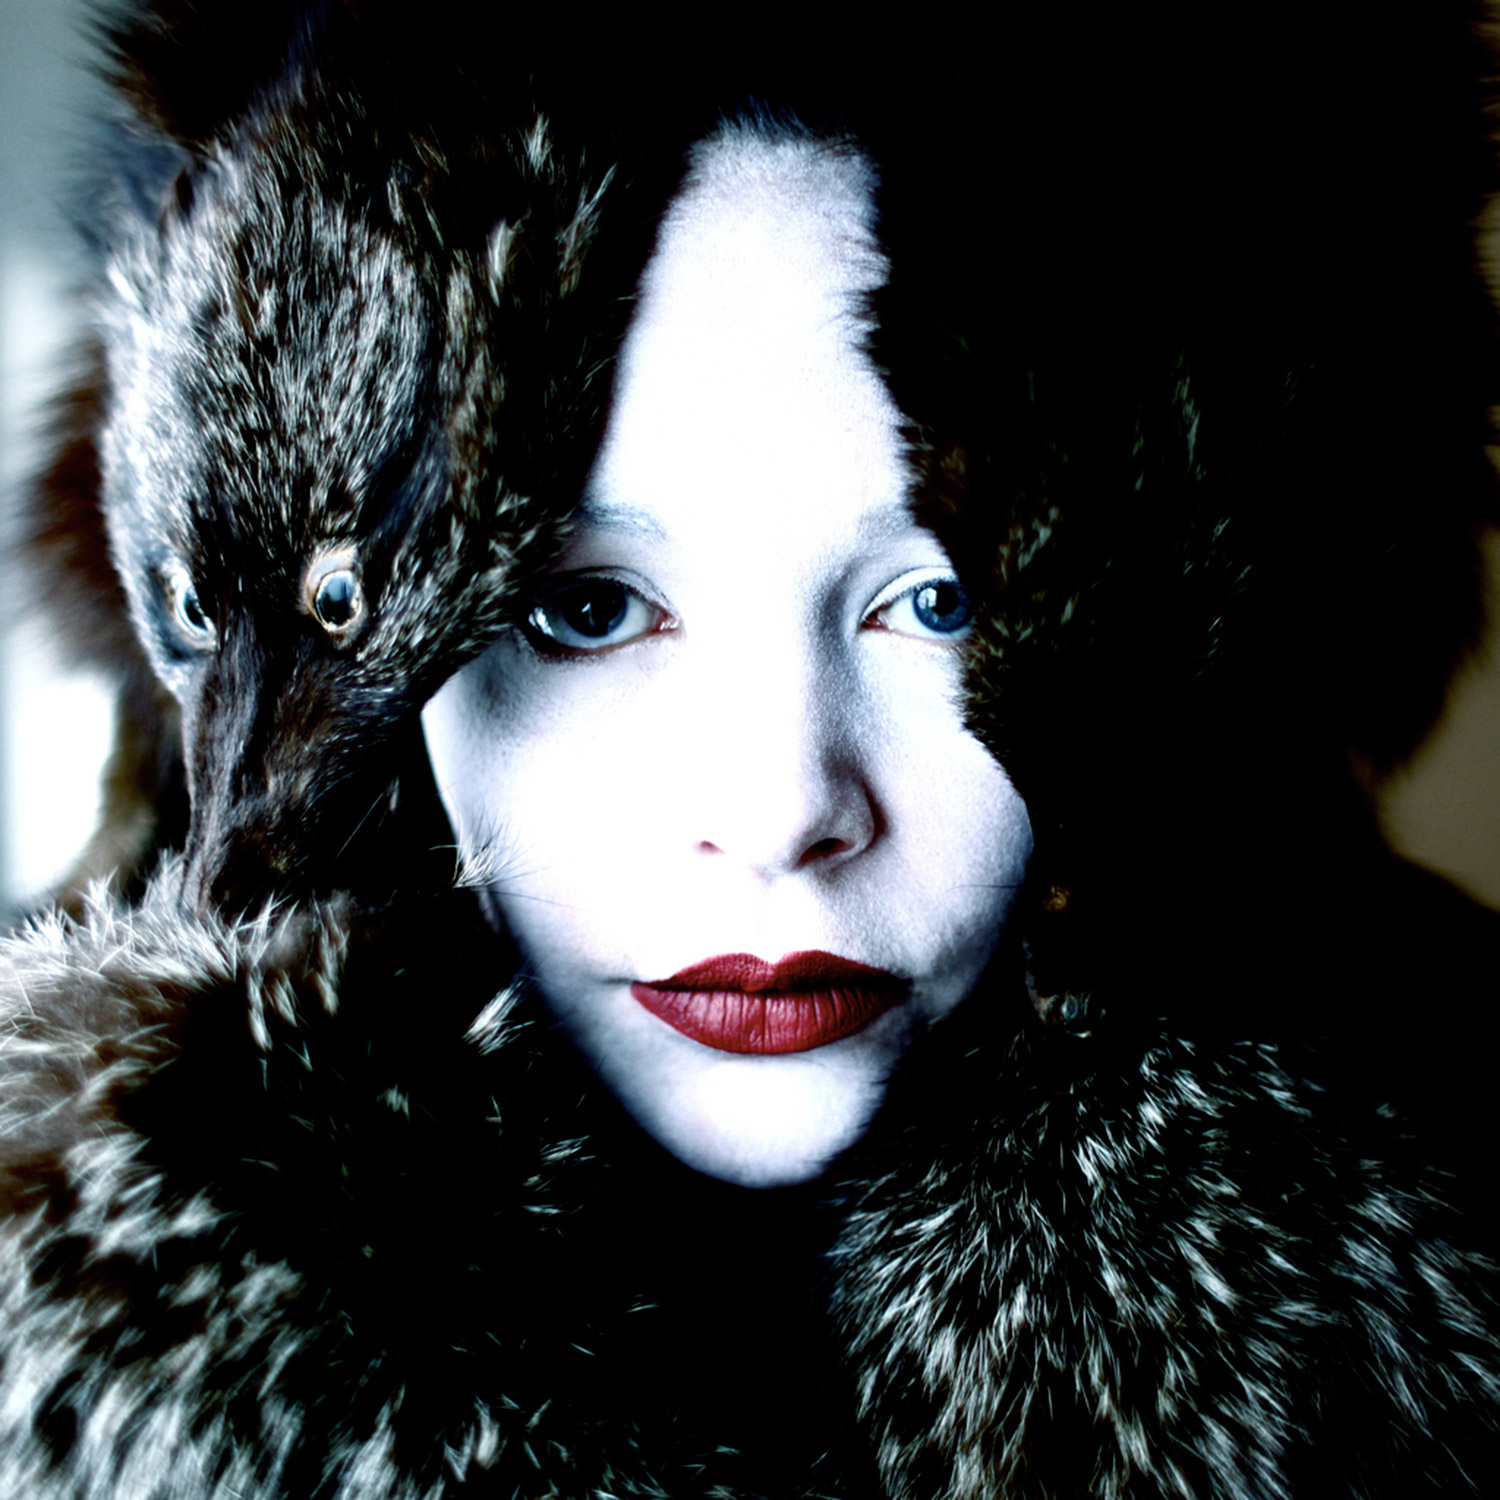 Helen Warner, Winter's Whisperer - woman with pale skin wearing fur